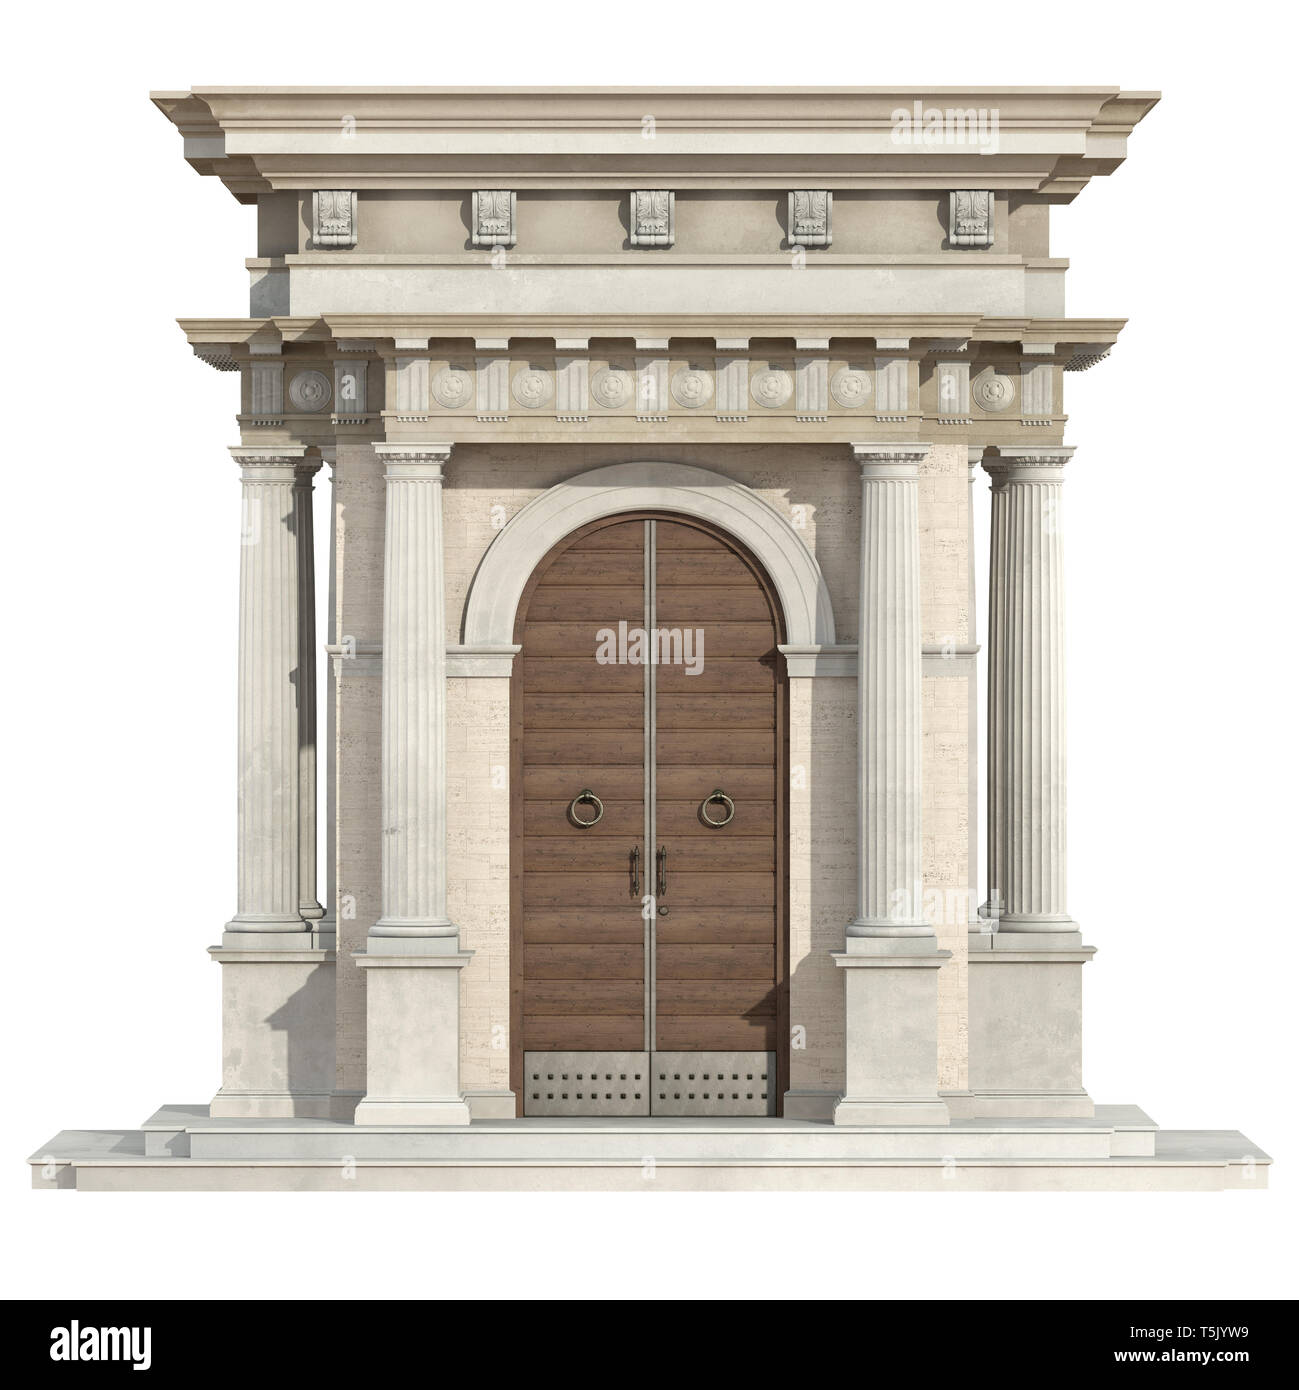 Old portal in neoclassical style with wooden front door and doric column isolated on white - 3d rendering - Stock Image